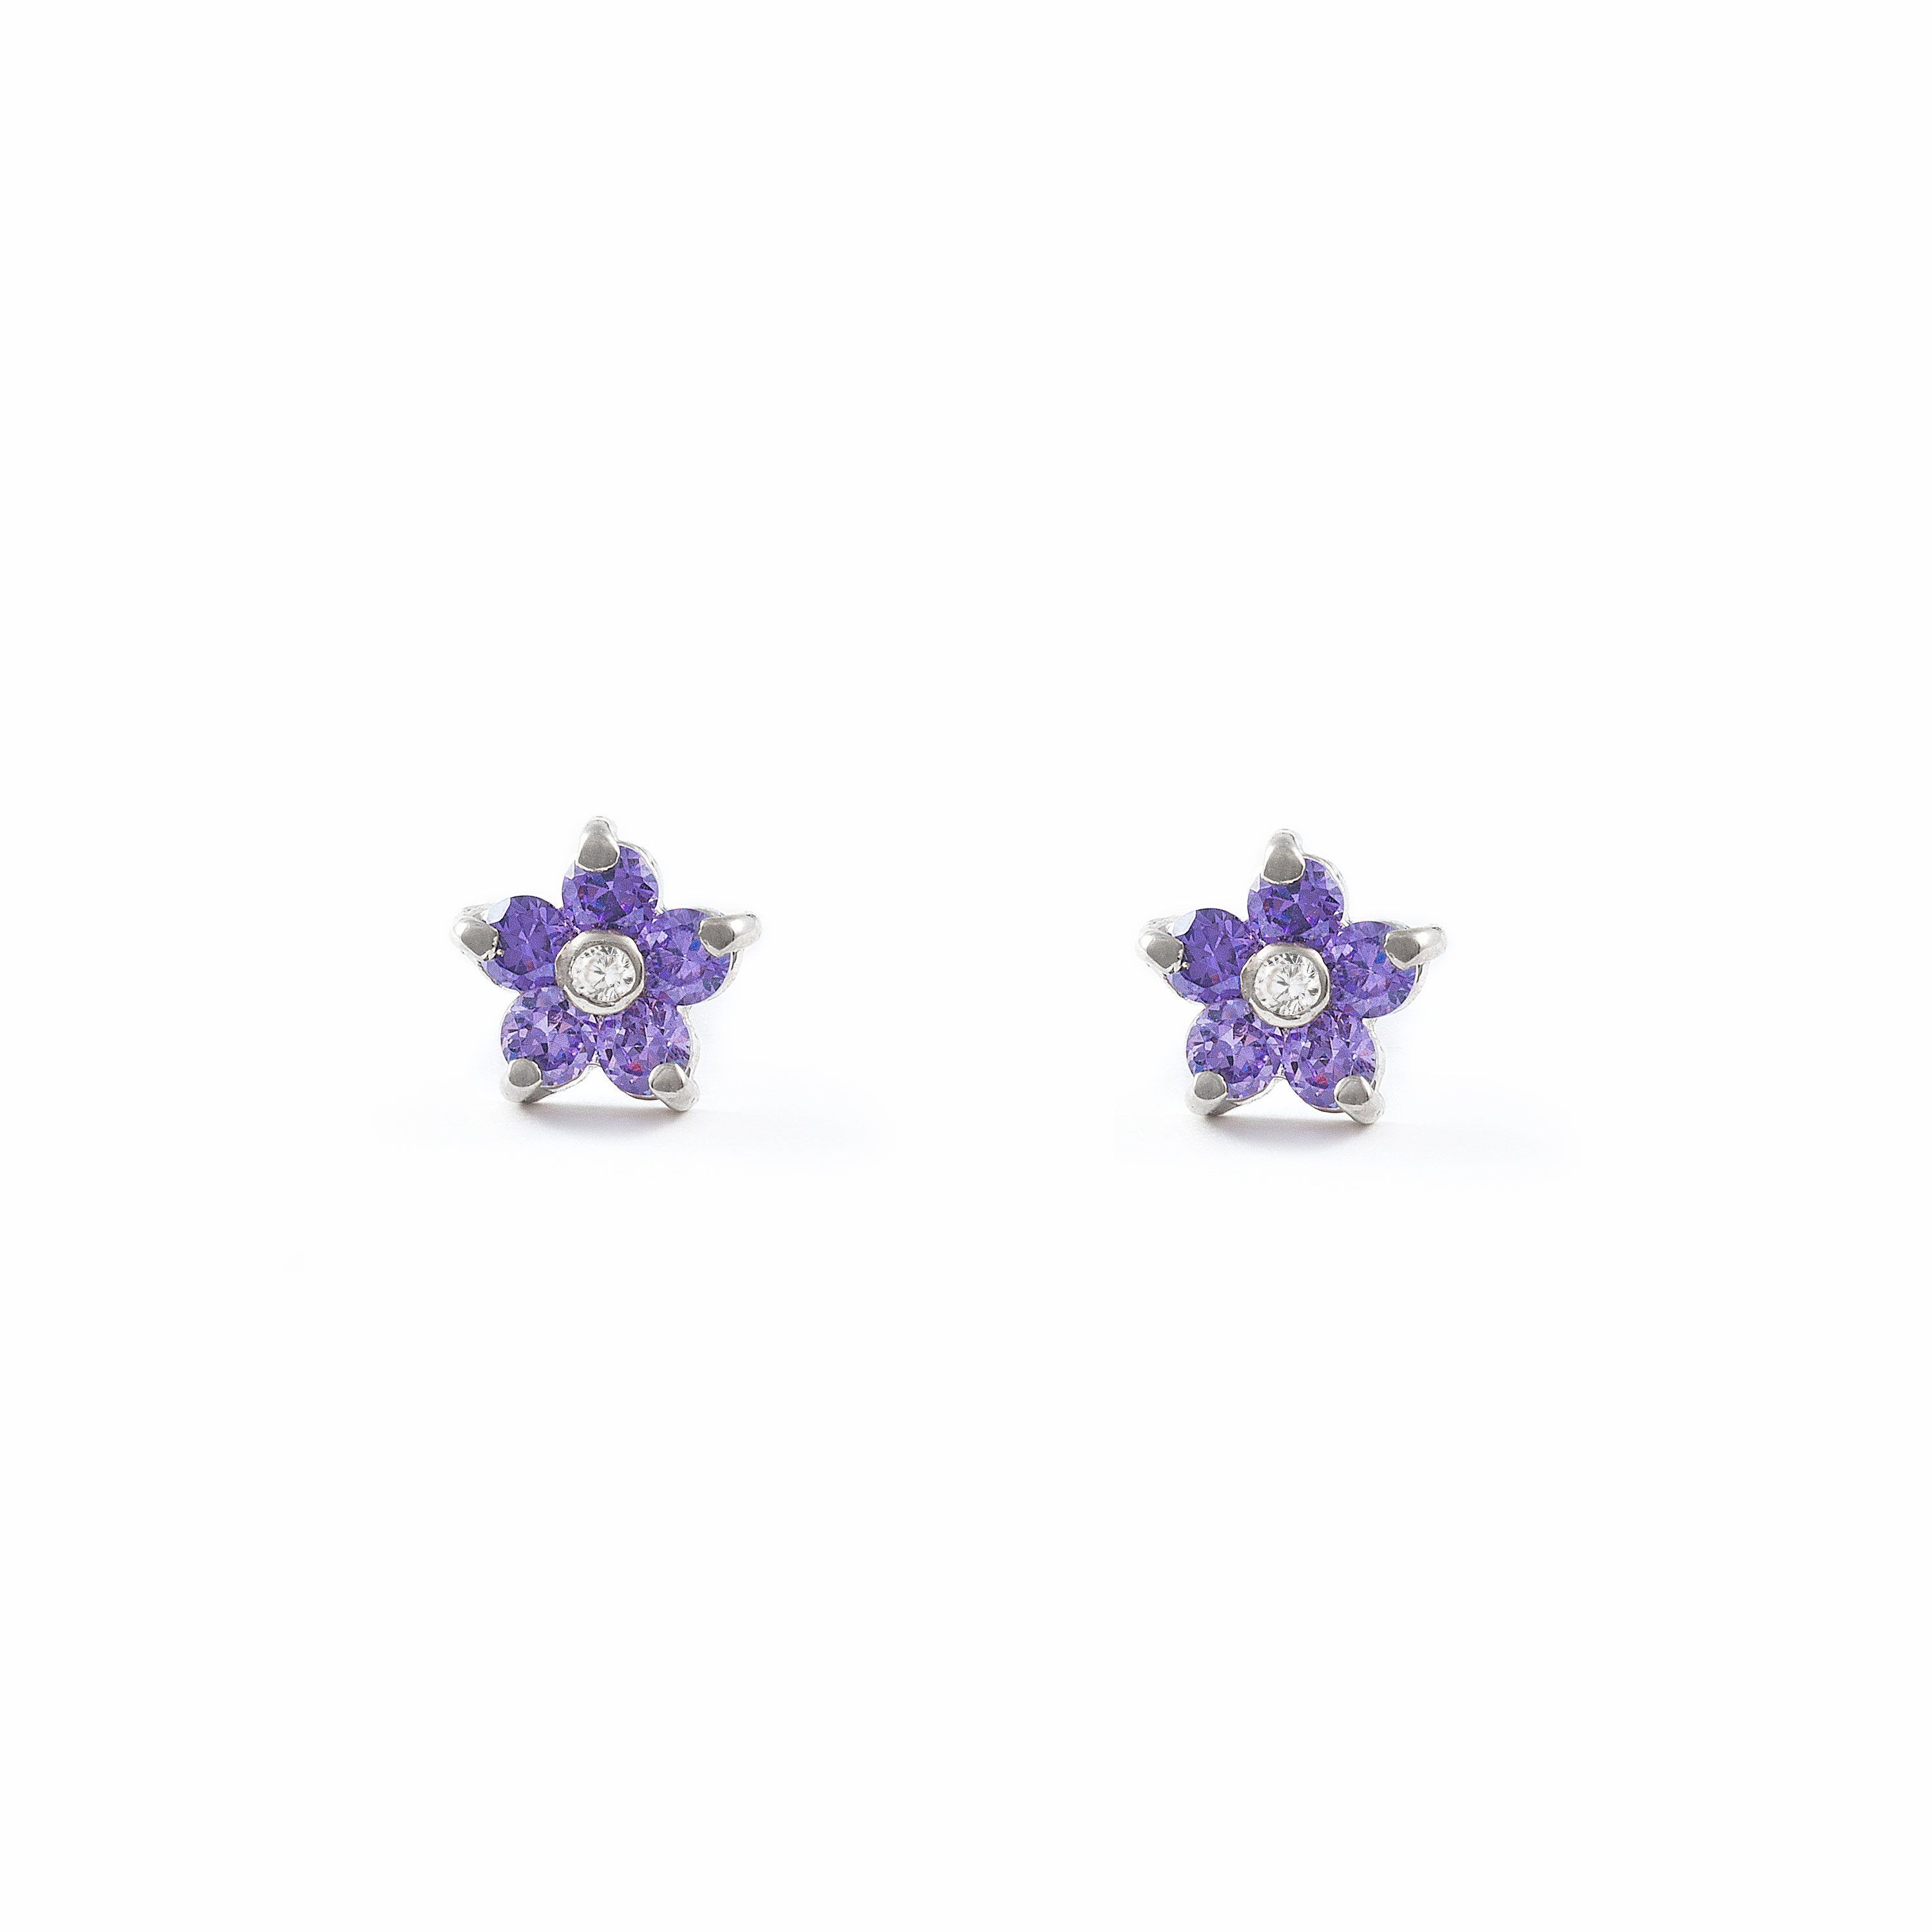 Details About 9ct White Gold Flower Children S Amethyst Earrings 8400p9k Ob Amatista